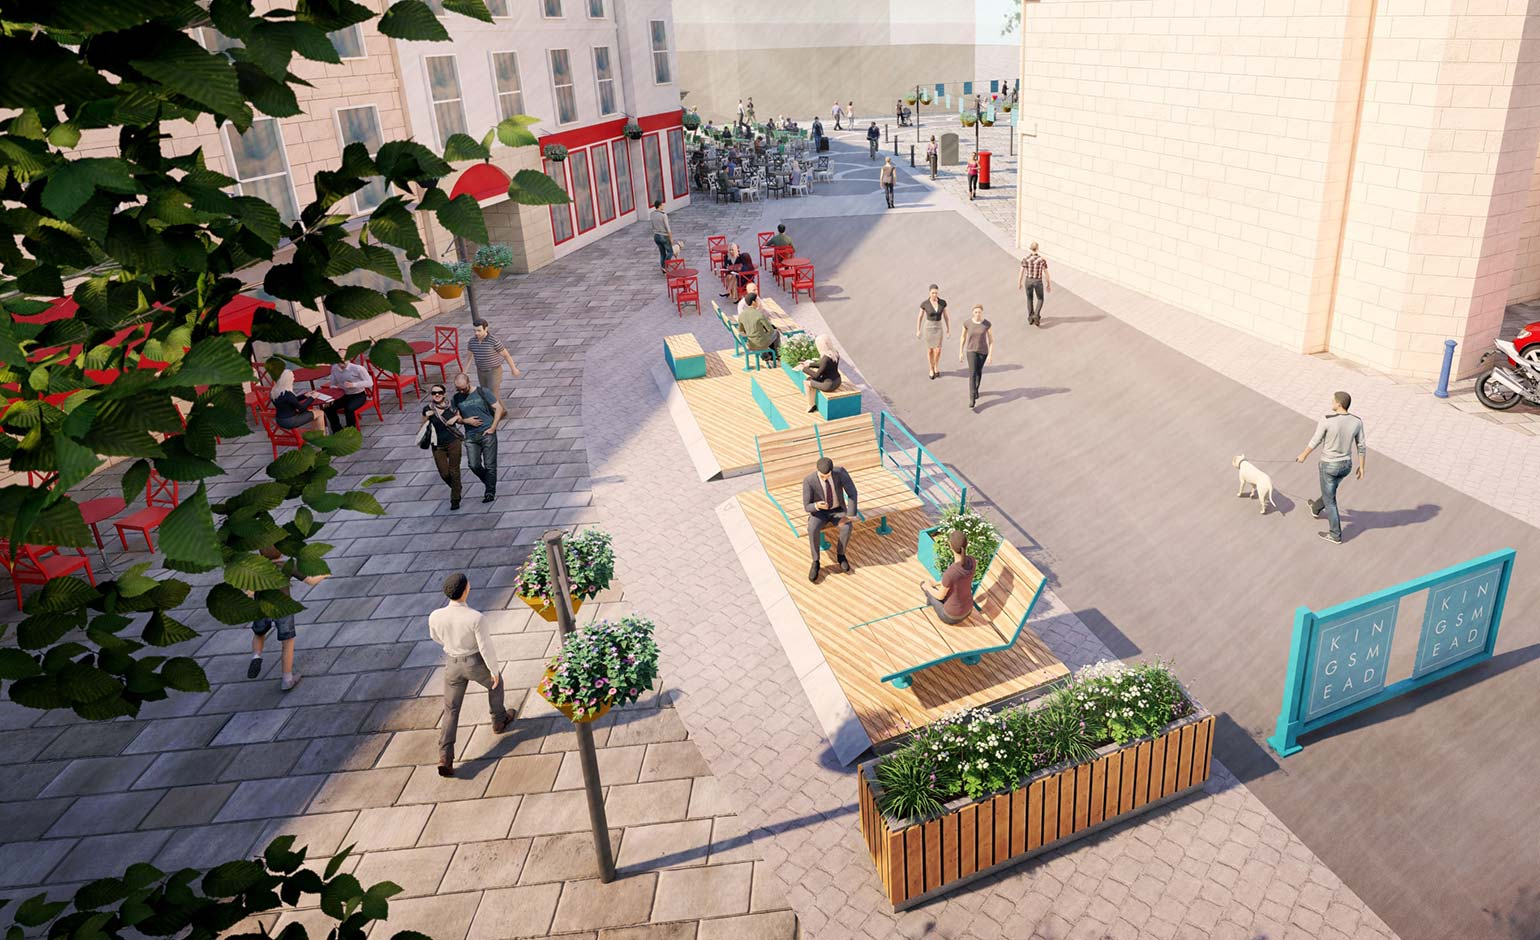 Plans for pedestrianisation of Kingsmead Square take another step forward